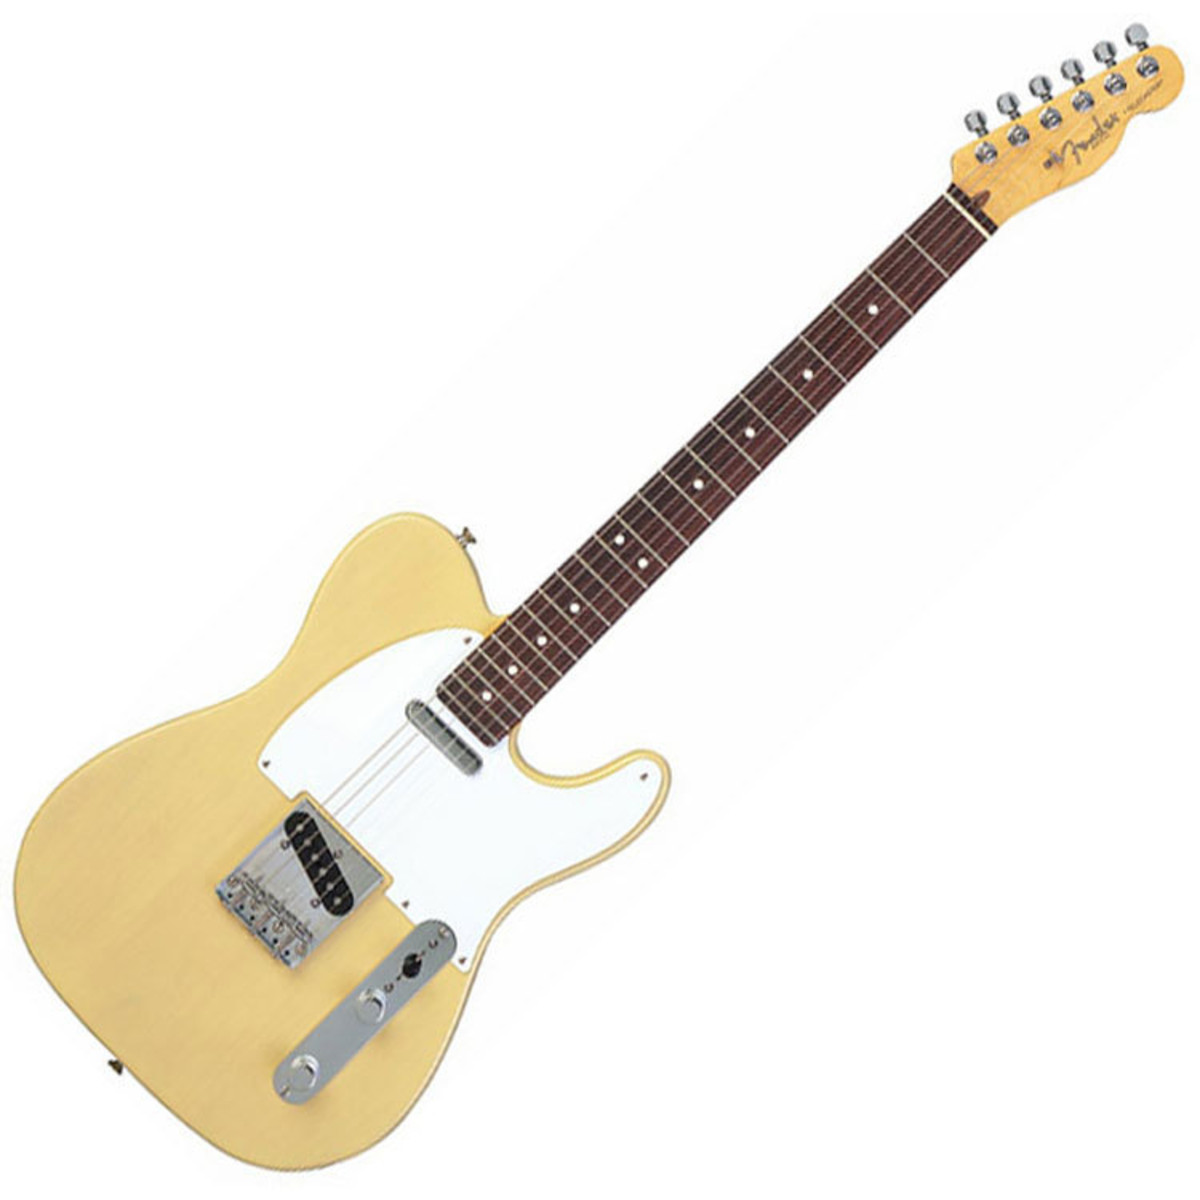 DISCONTINUED Fender Highway 1 Telecaster, RW, Honey Blonde ...